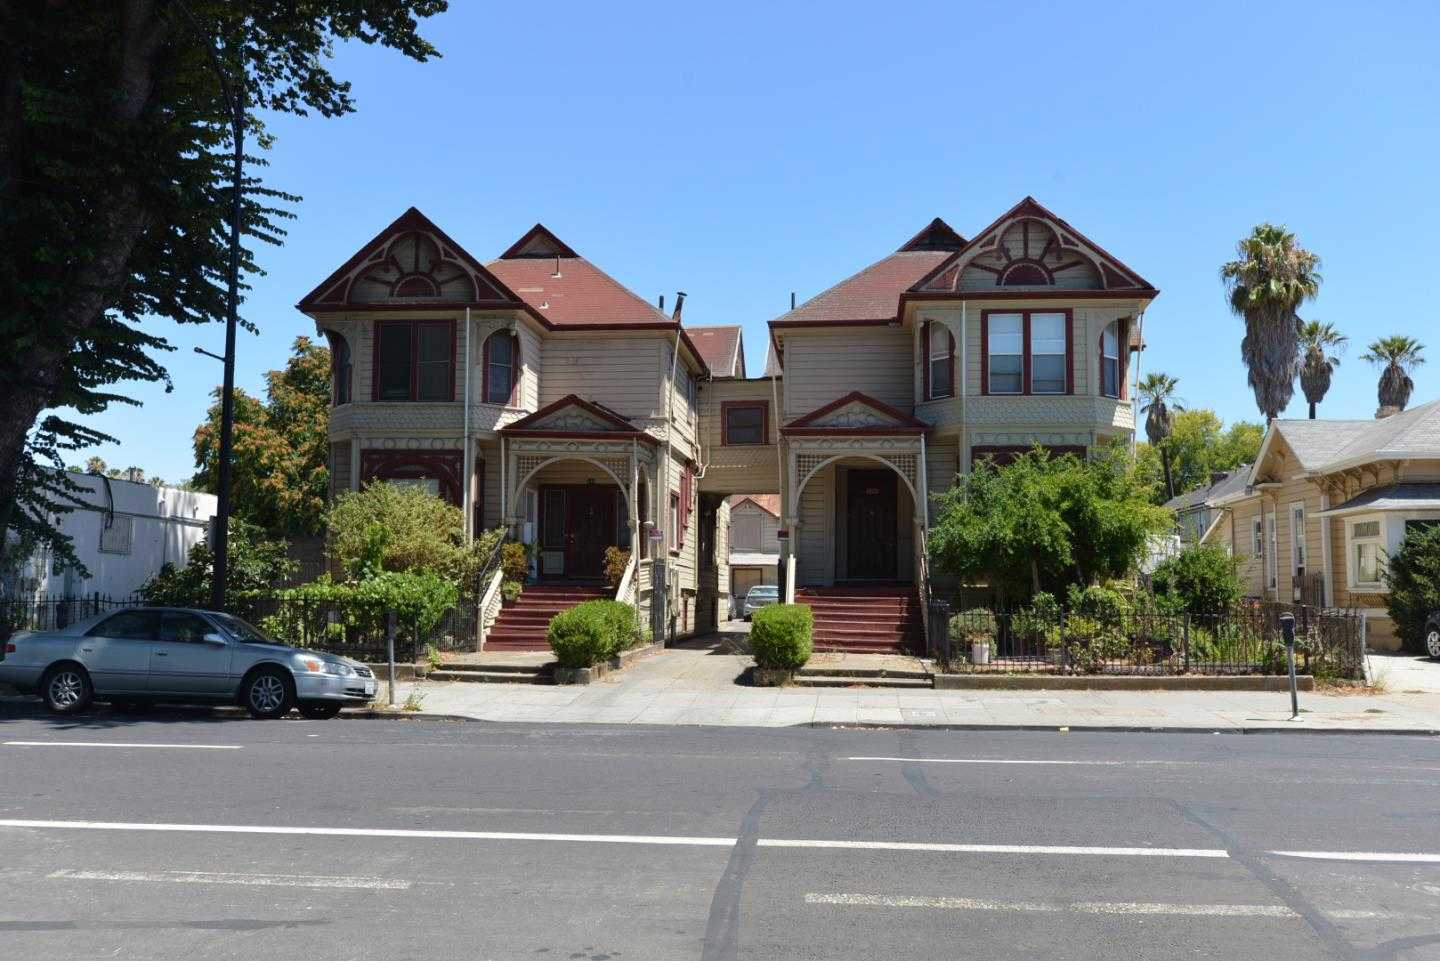 446-450 S 2nd ST SAN JOSE, CA 95113